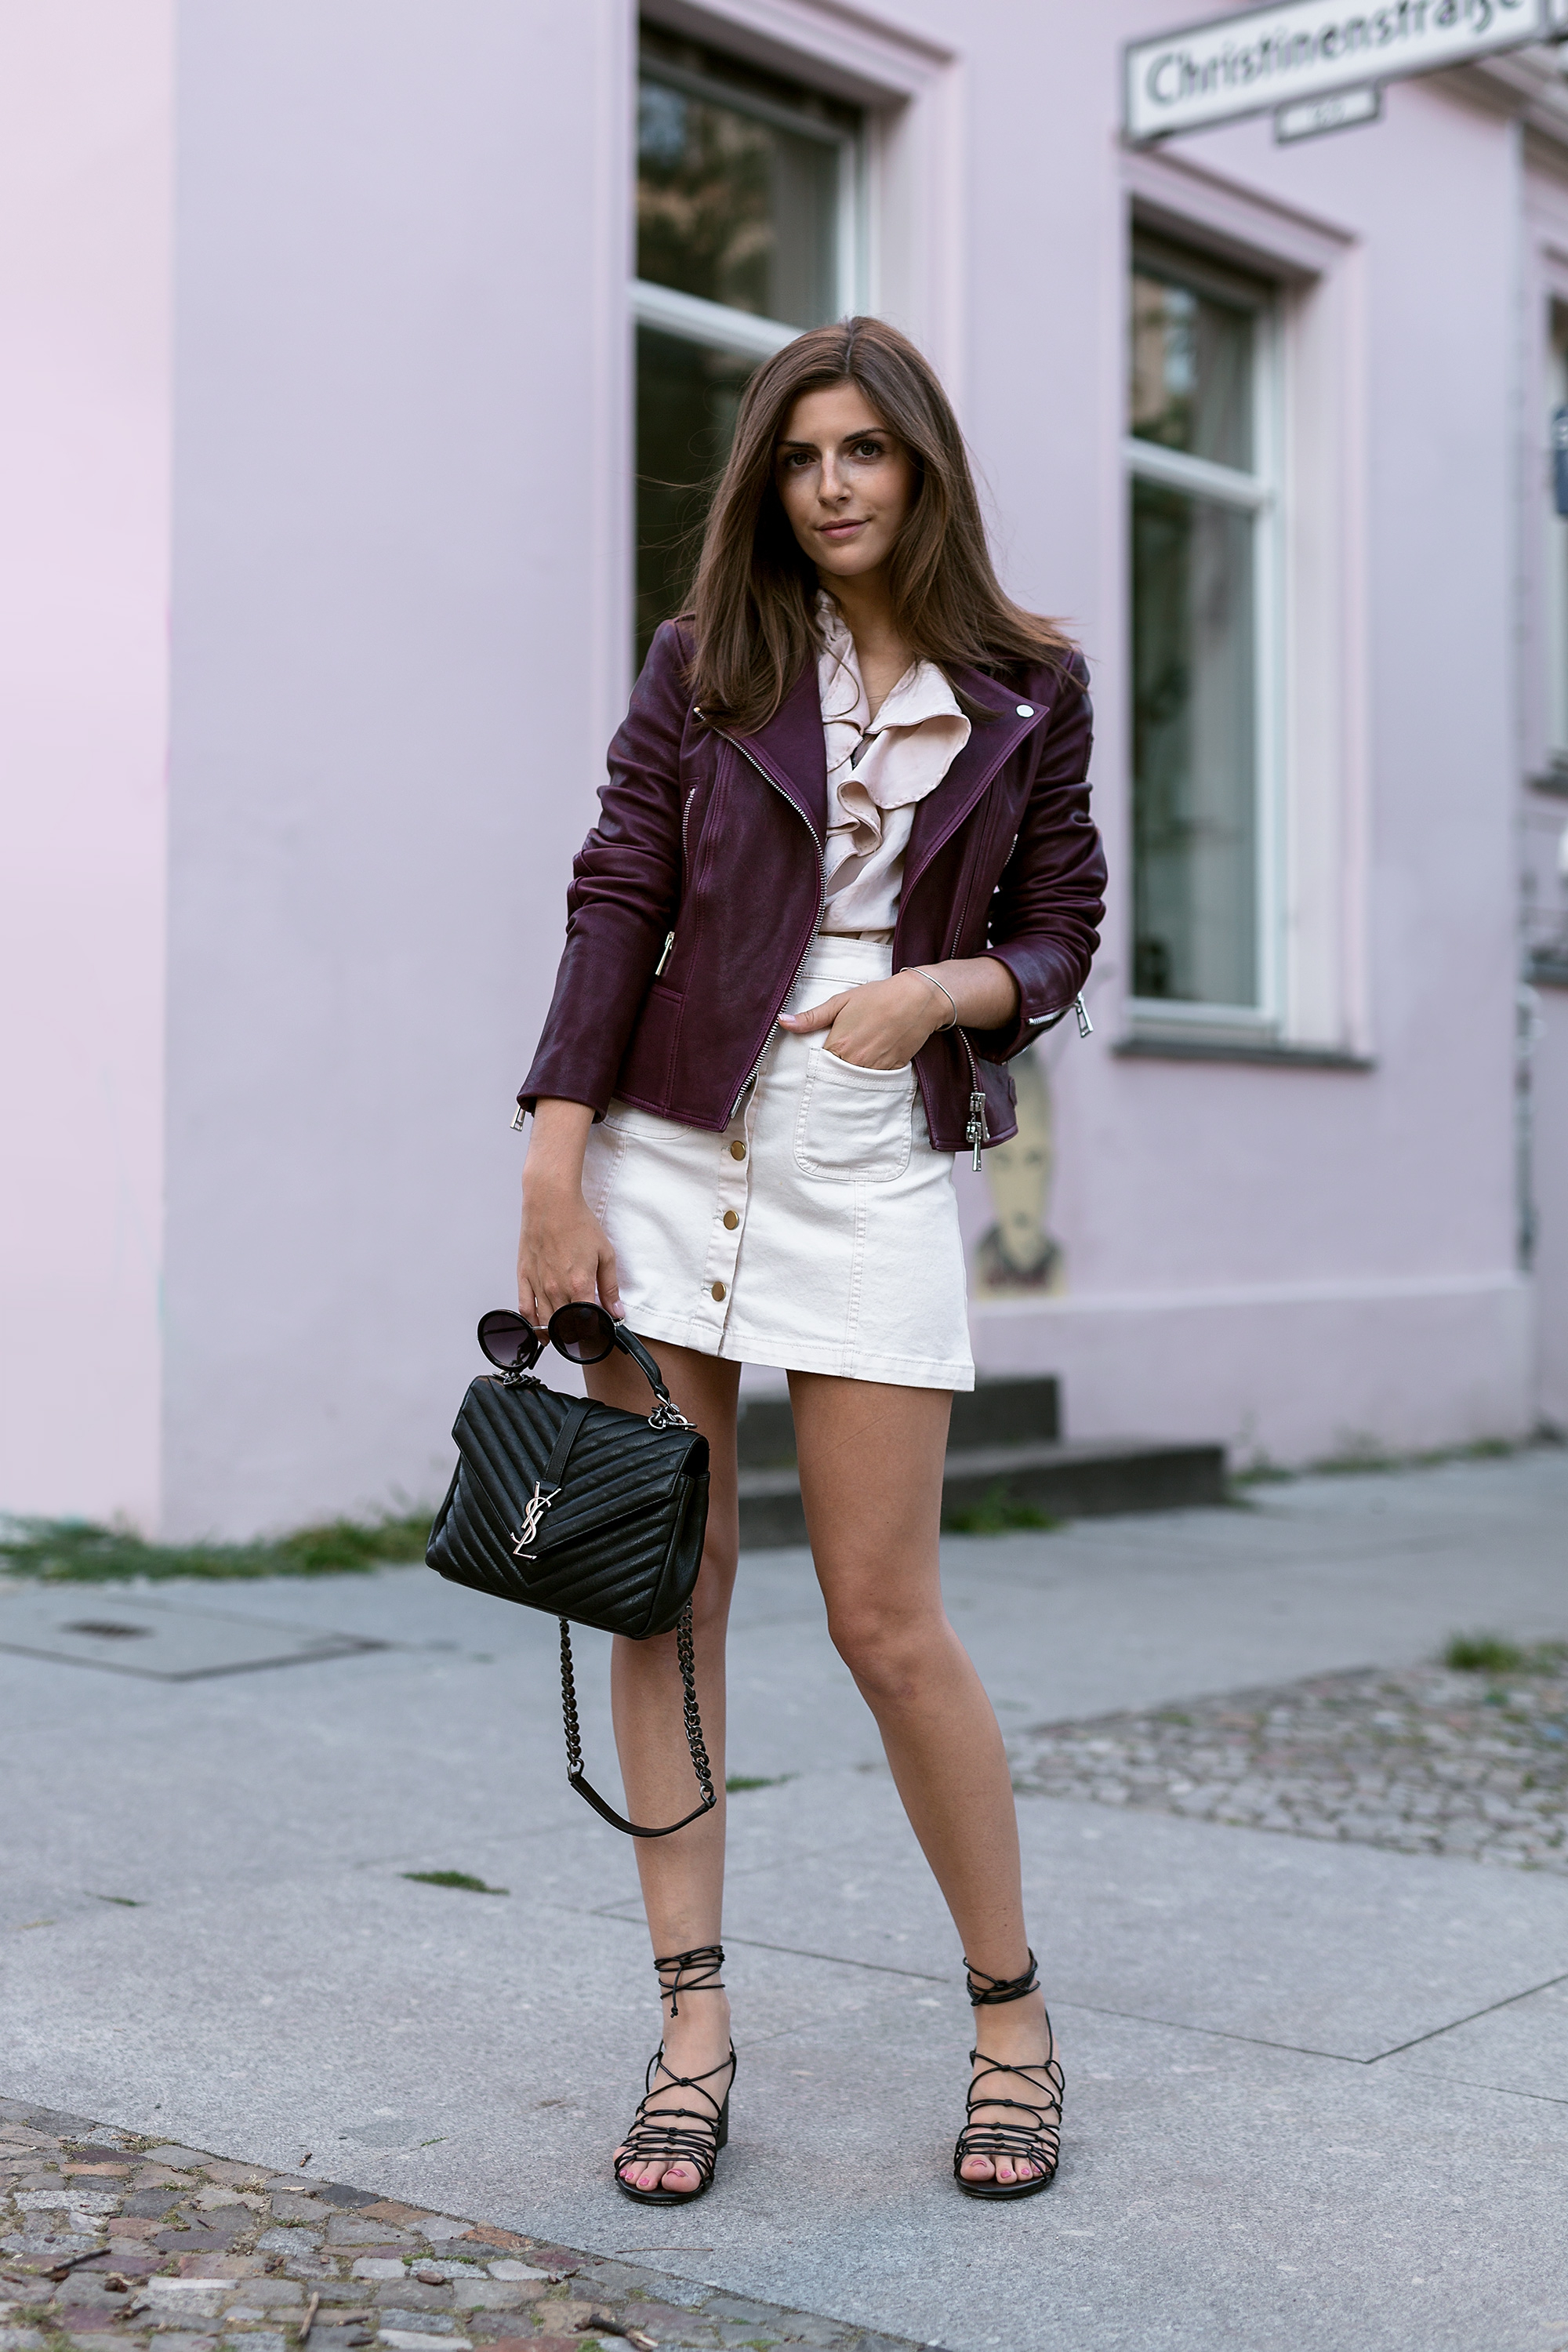 Go against tradition, and make summer leather your style! Valerie Husemann is killing it in this gorgeous plum piece, paired thoughtfully with a button front skirt and gladiator sandals. Jacket: Belstaff, Blouse: Zara, Skirt: Stradivarius, Bag: Saint Laurent, Shoes: Mango.